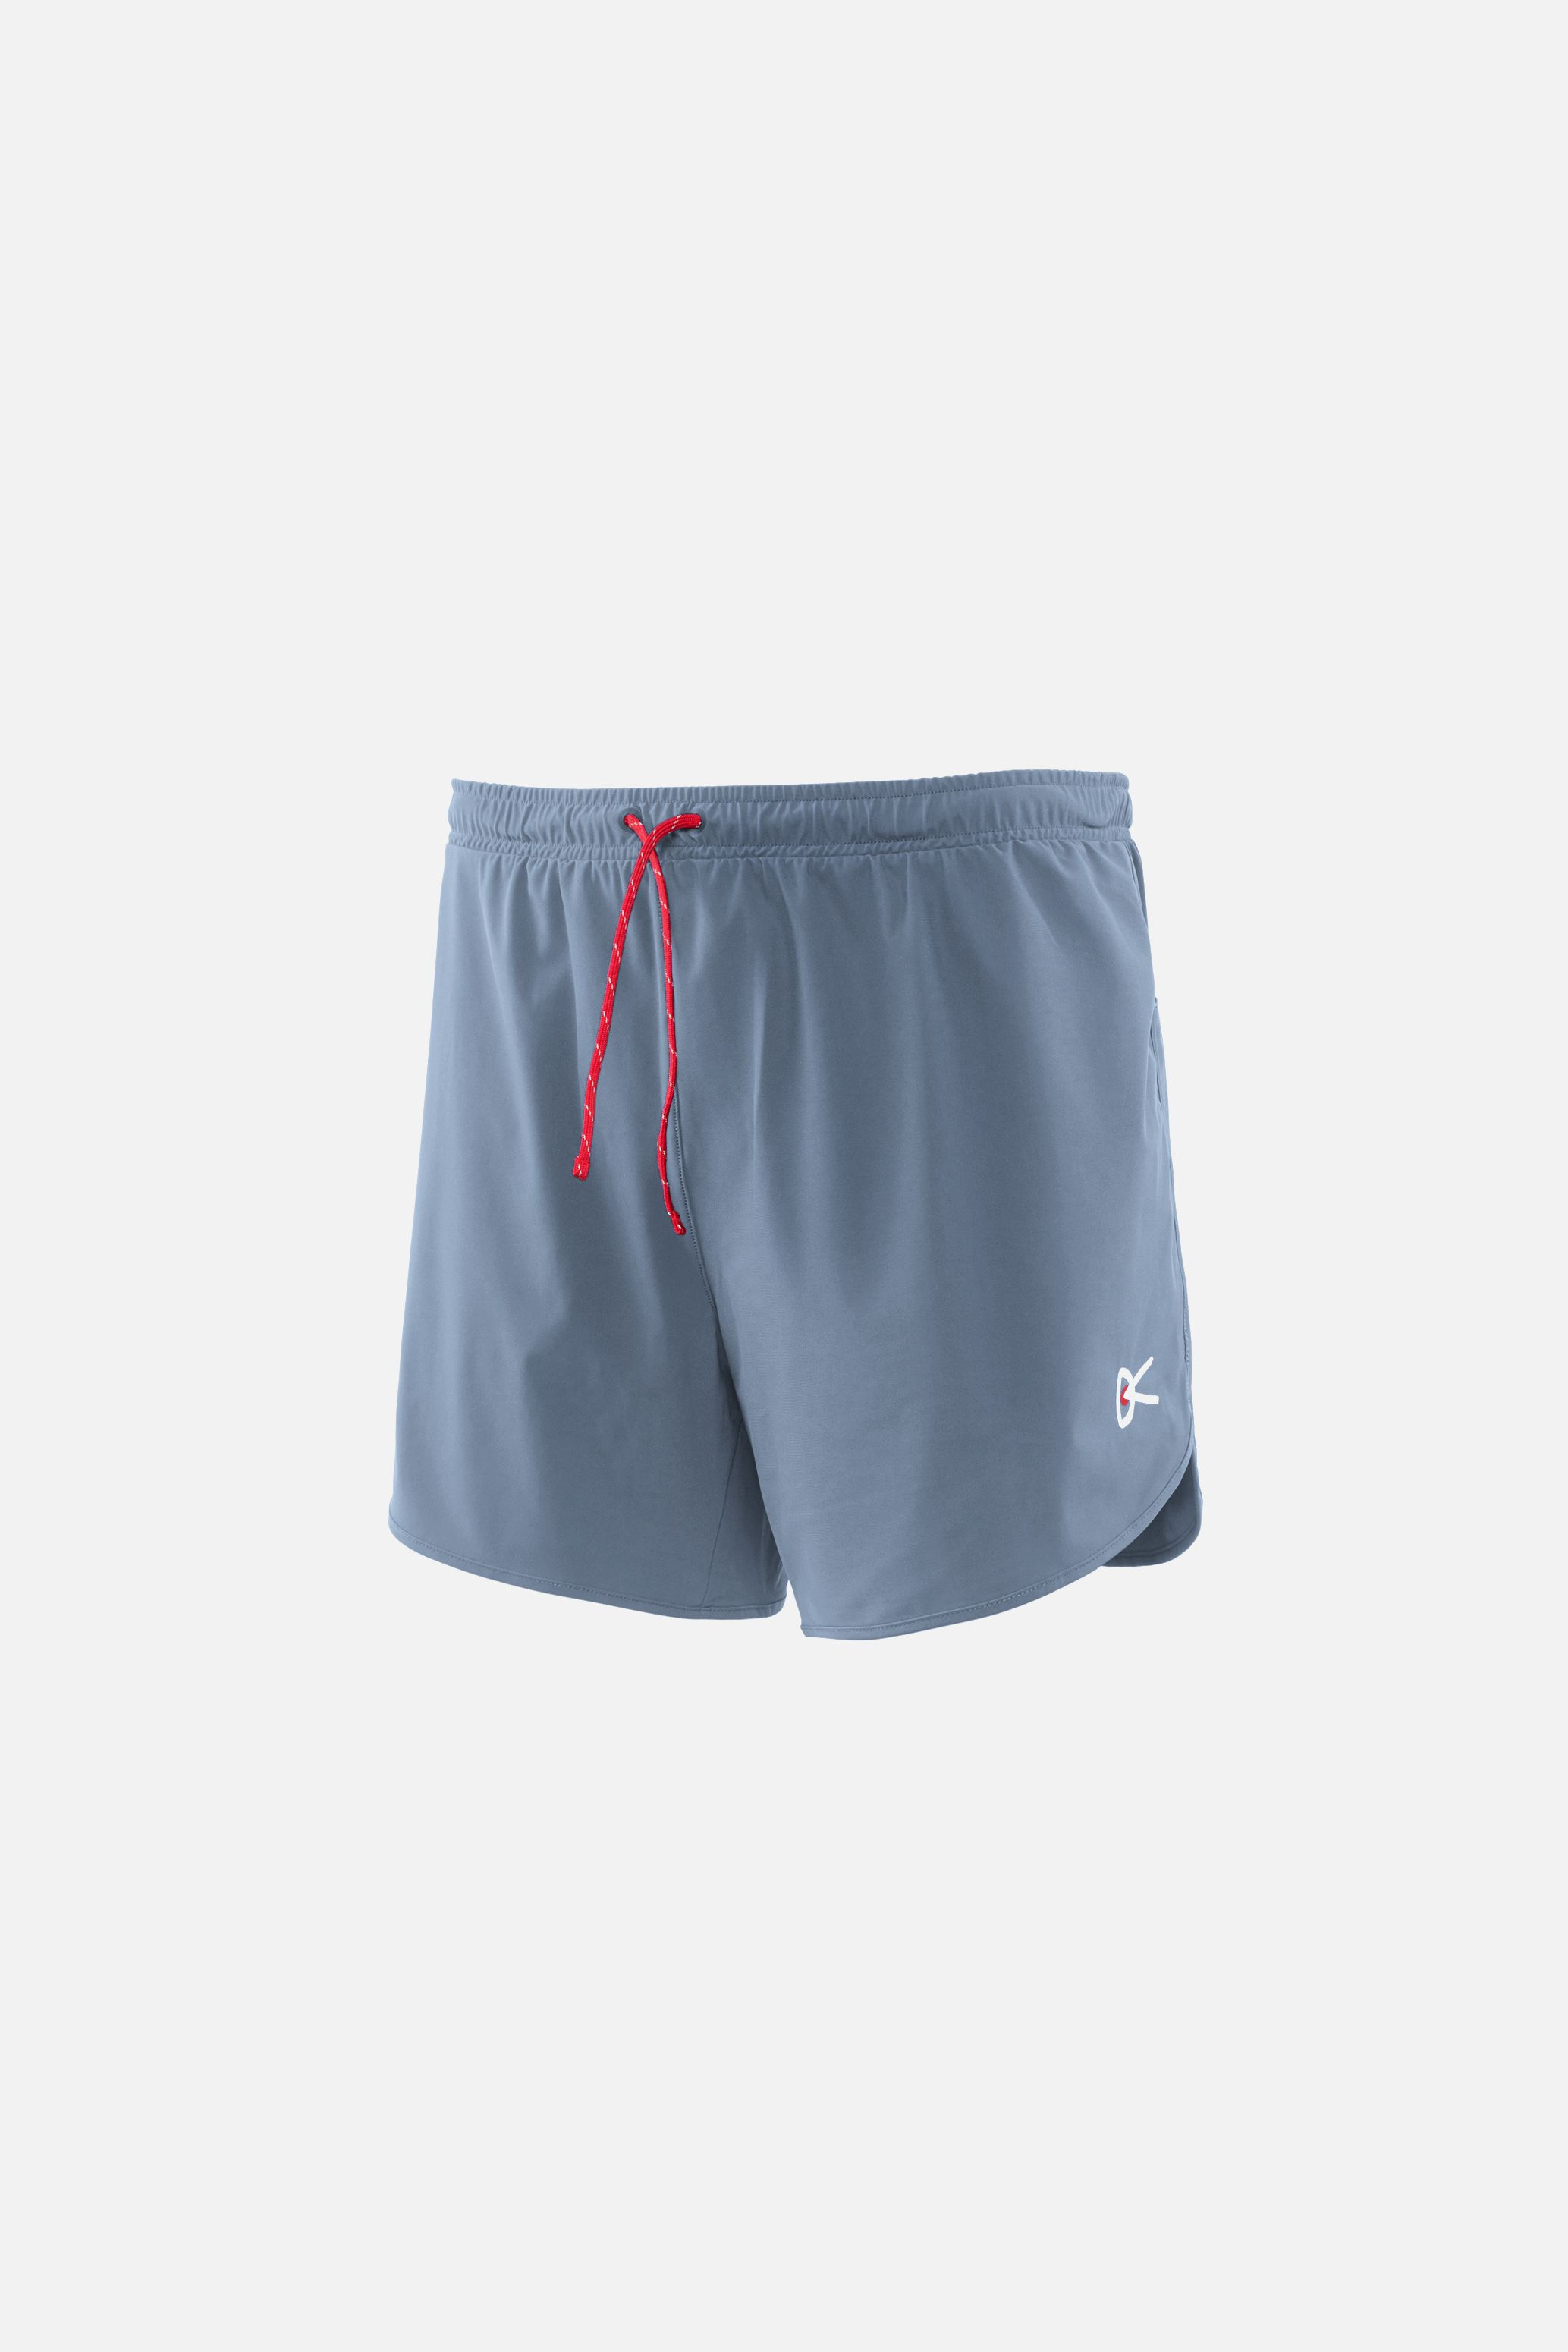 Spino 5 inch Training Shorts, Sky